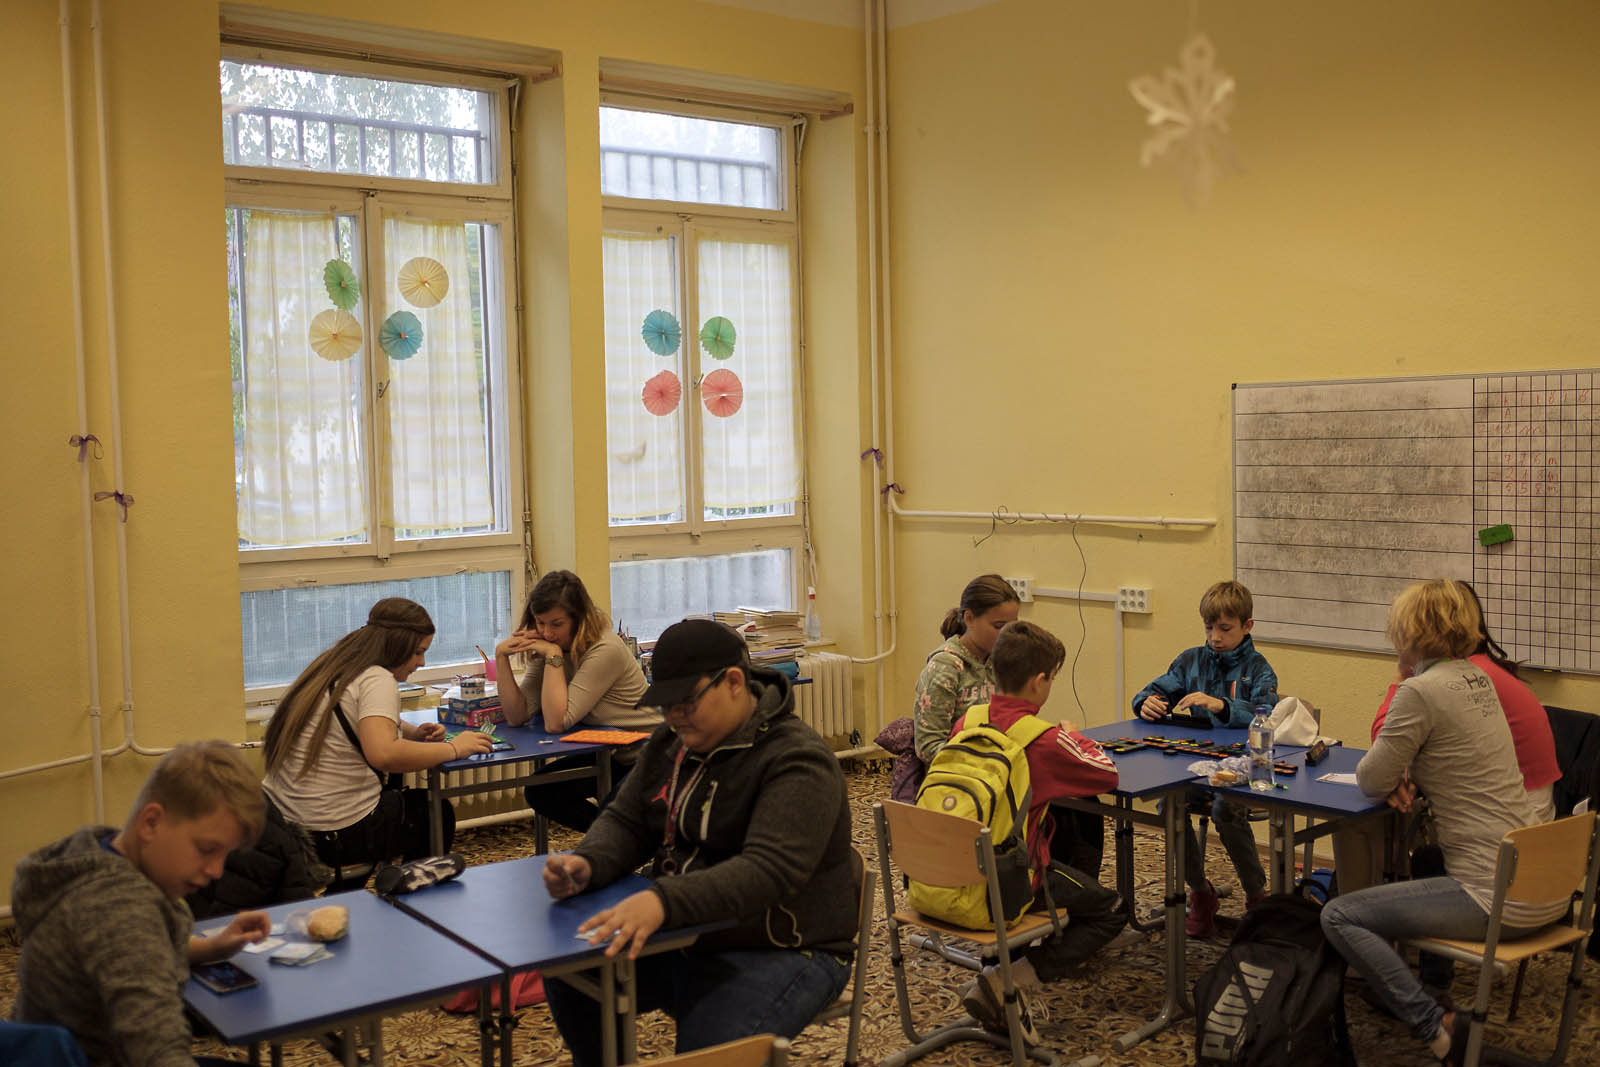 Pentelei School for kids with challenging backgrounds in Dunaujvaros in Dunaujvaros, Hungary